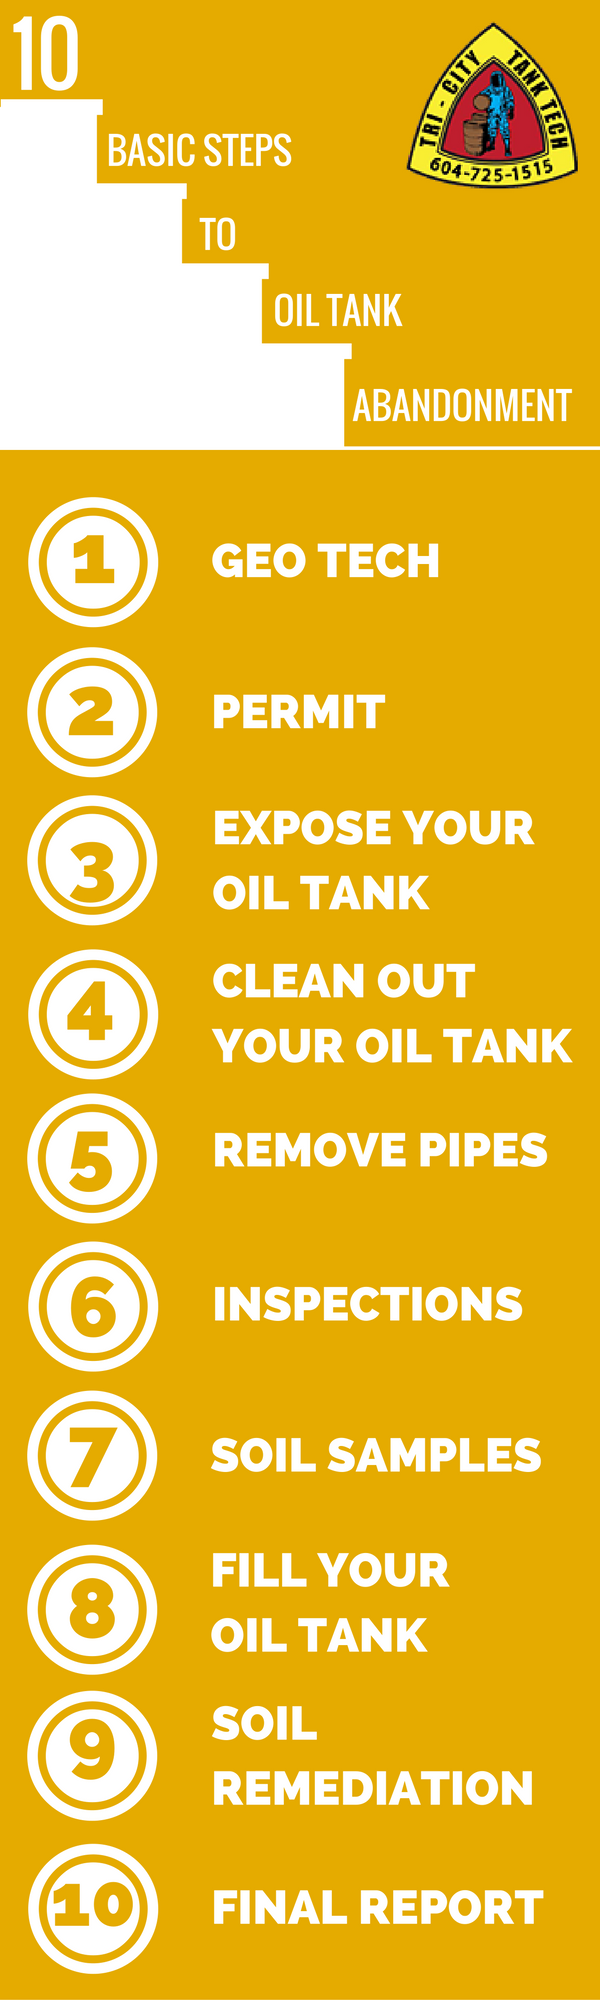 10-basic-steps-to-oil-tank-abandonment-image